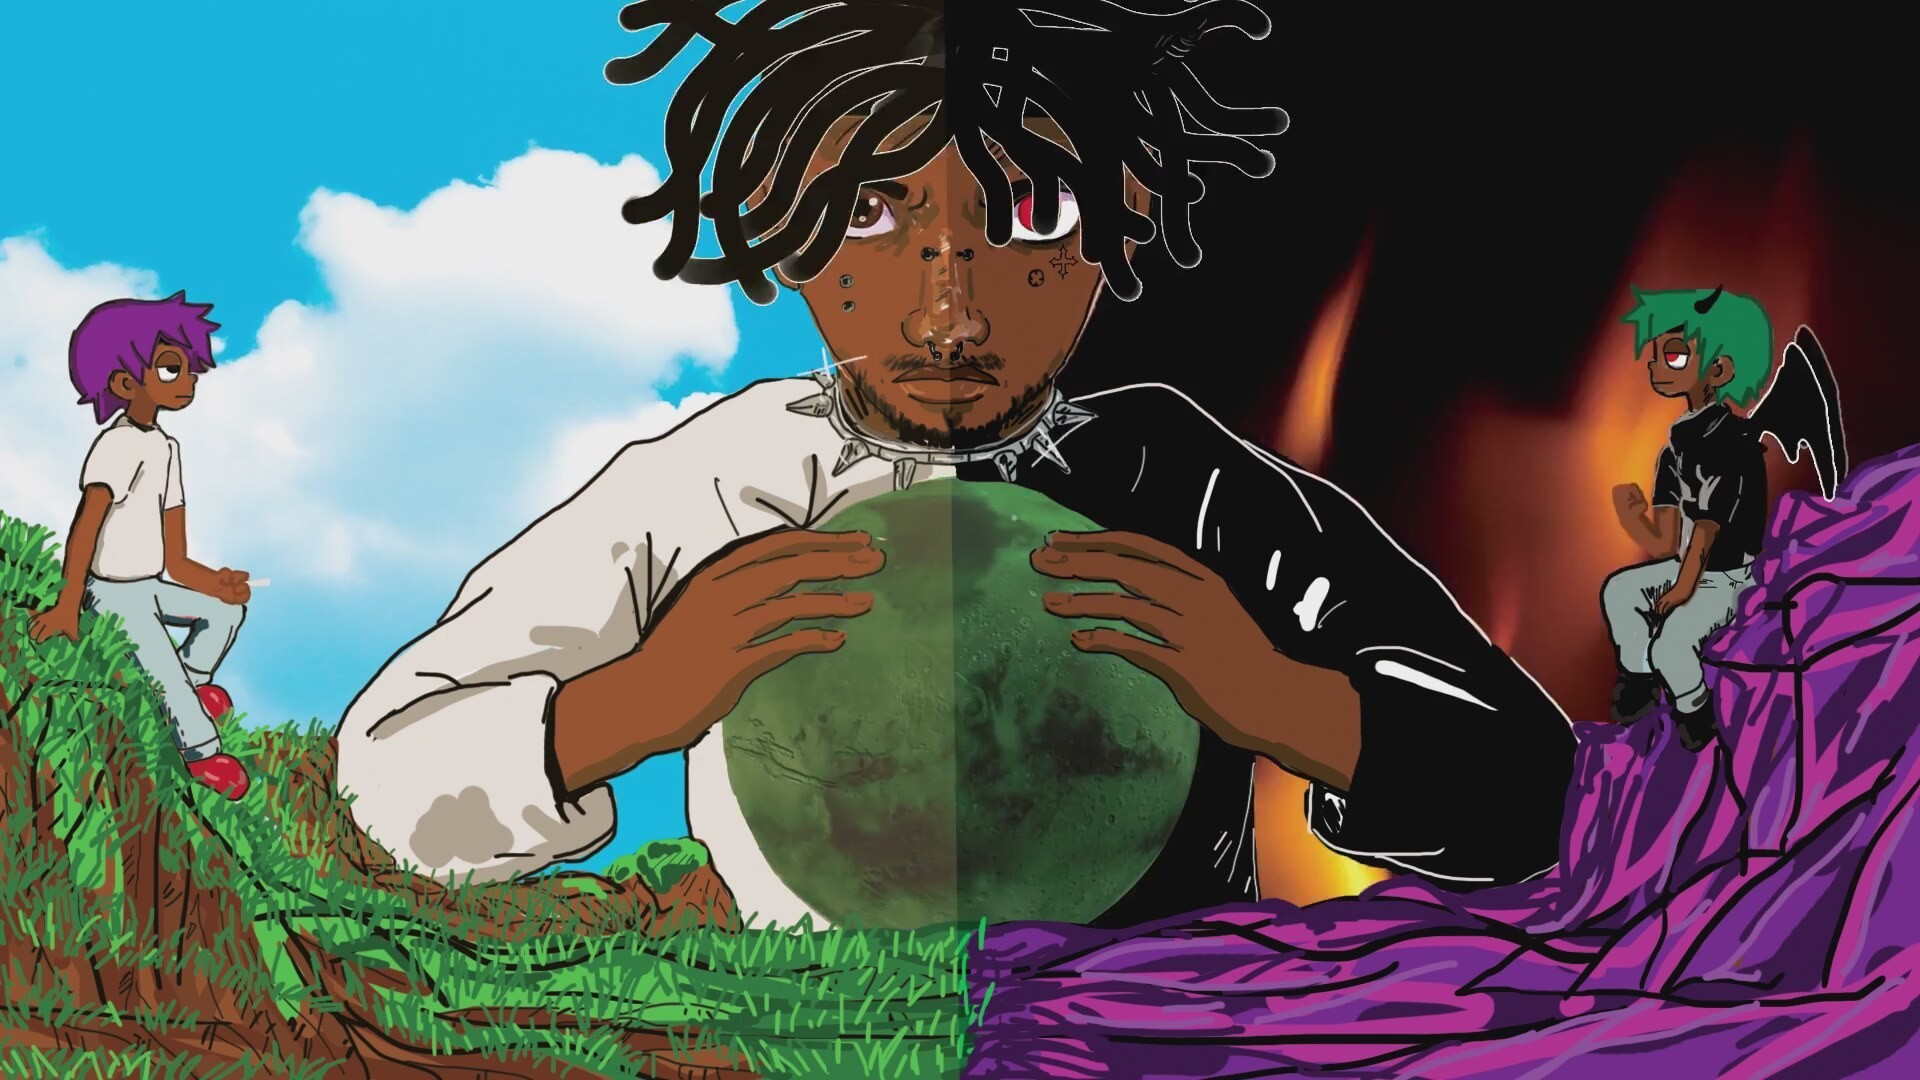 Lil Uzi Vert Animated Lil Uzi Vert 1920x1080 Wallpaper Teahub Io You can download the wallpaper as well as utilize it for your desktop computer. lil uzi vert animated lil uzi vert